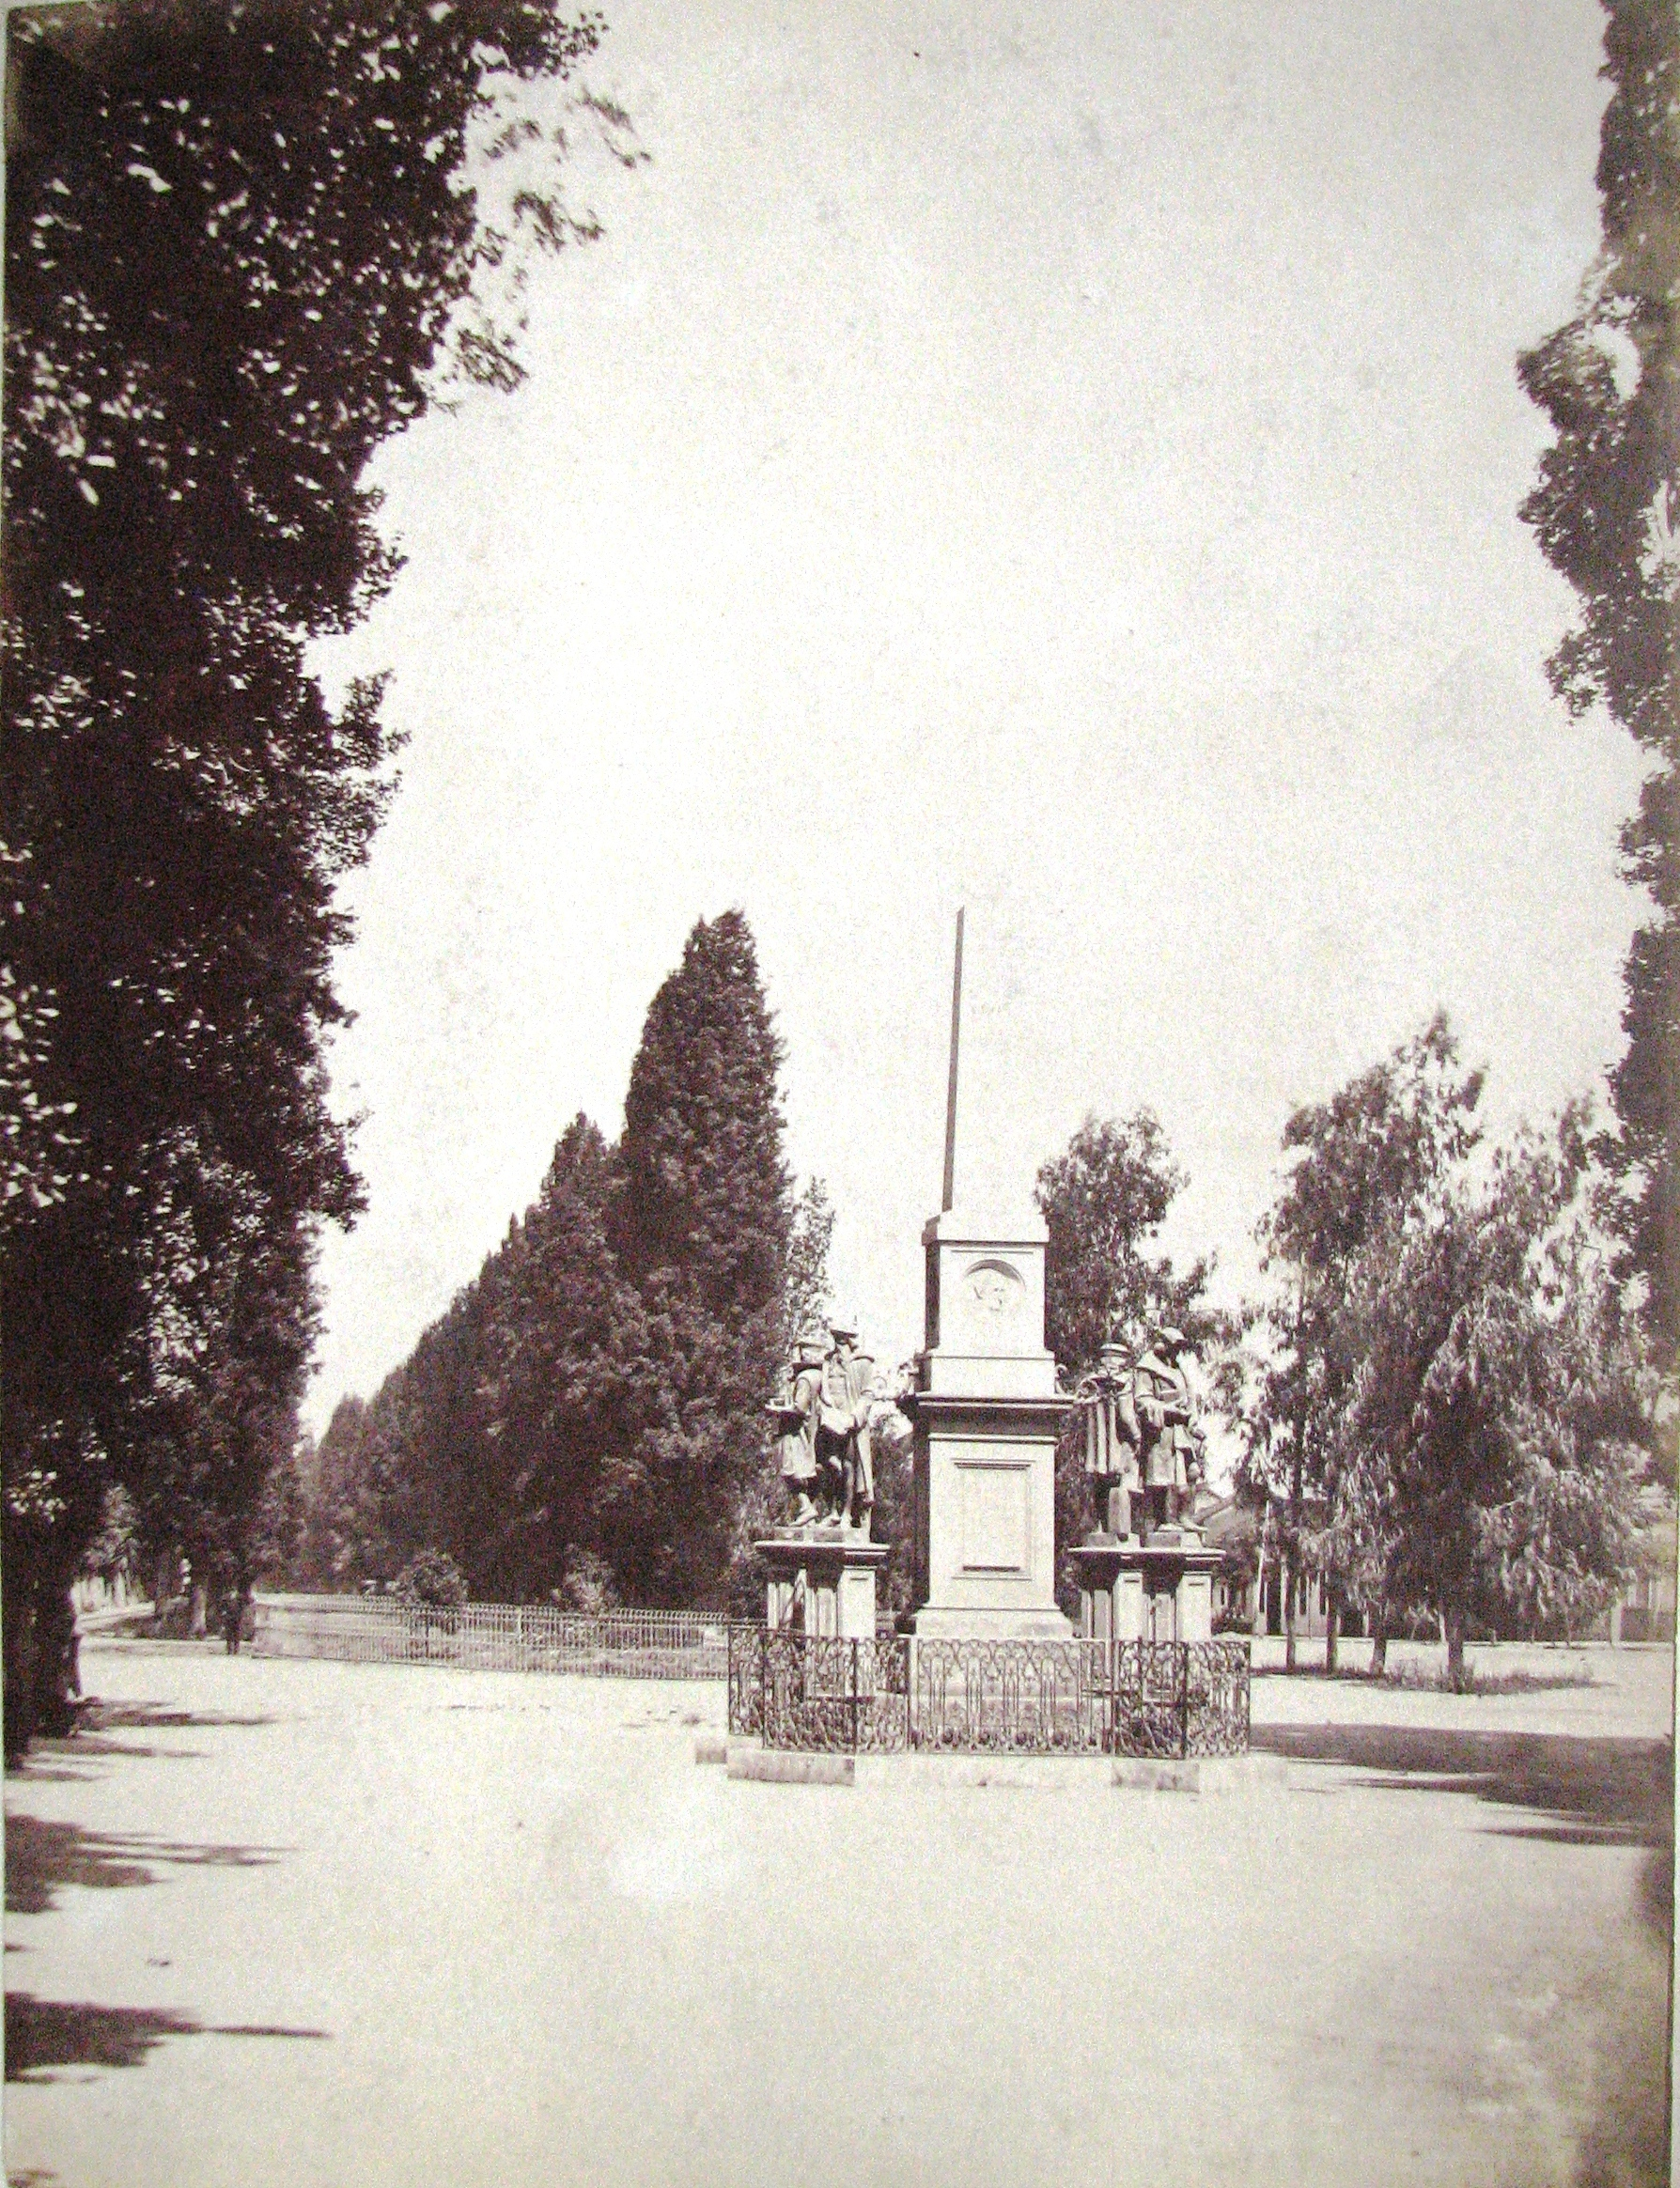 Enterreno - Fotos históricas de chile - fotos antiguas de Chile - Obelisco de la Alameda en 1880